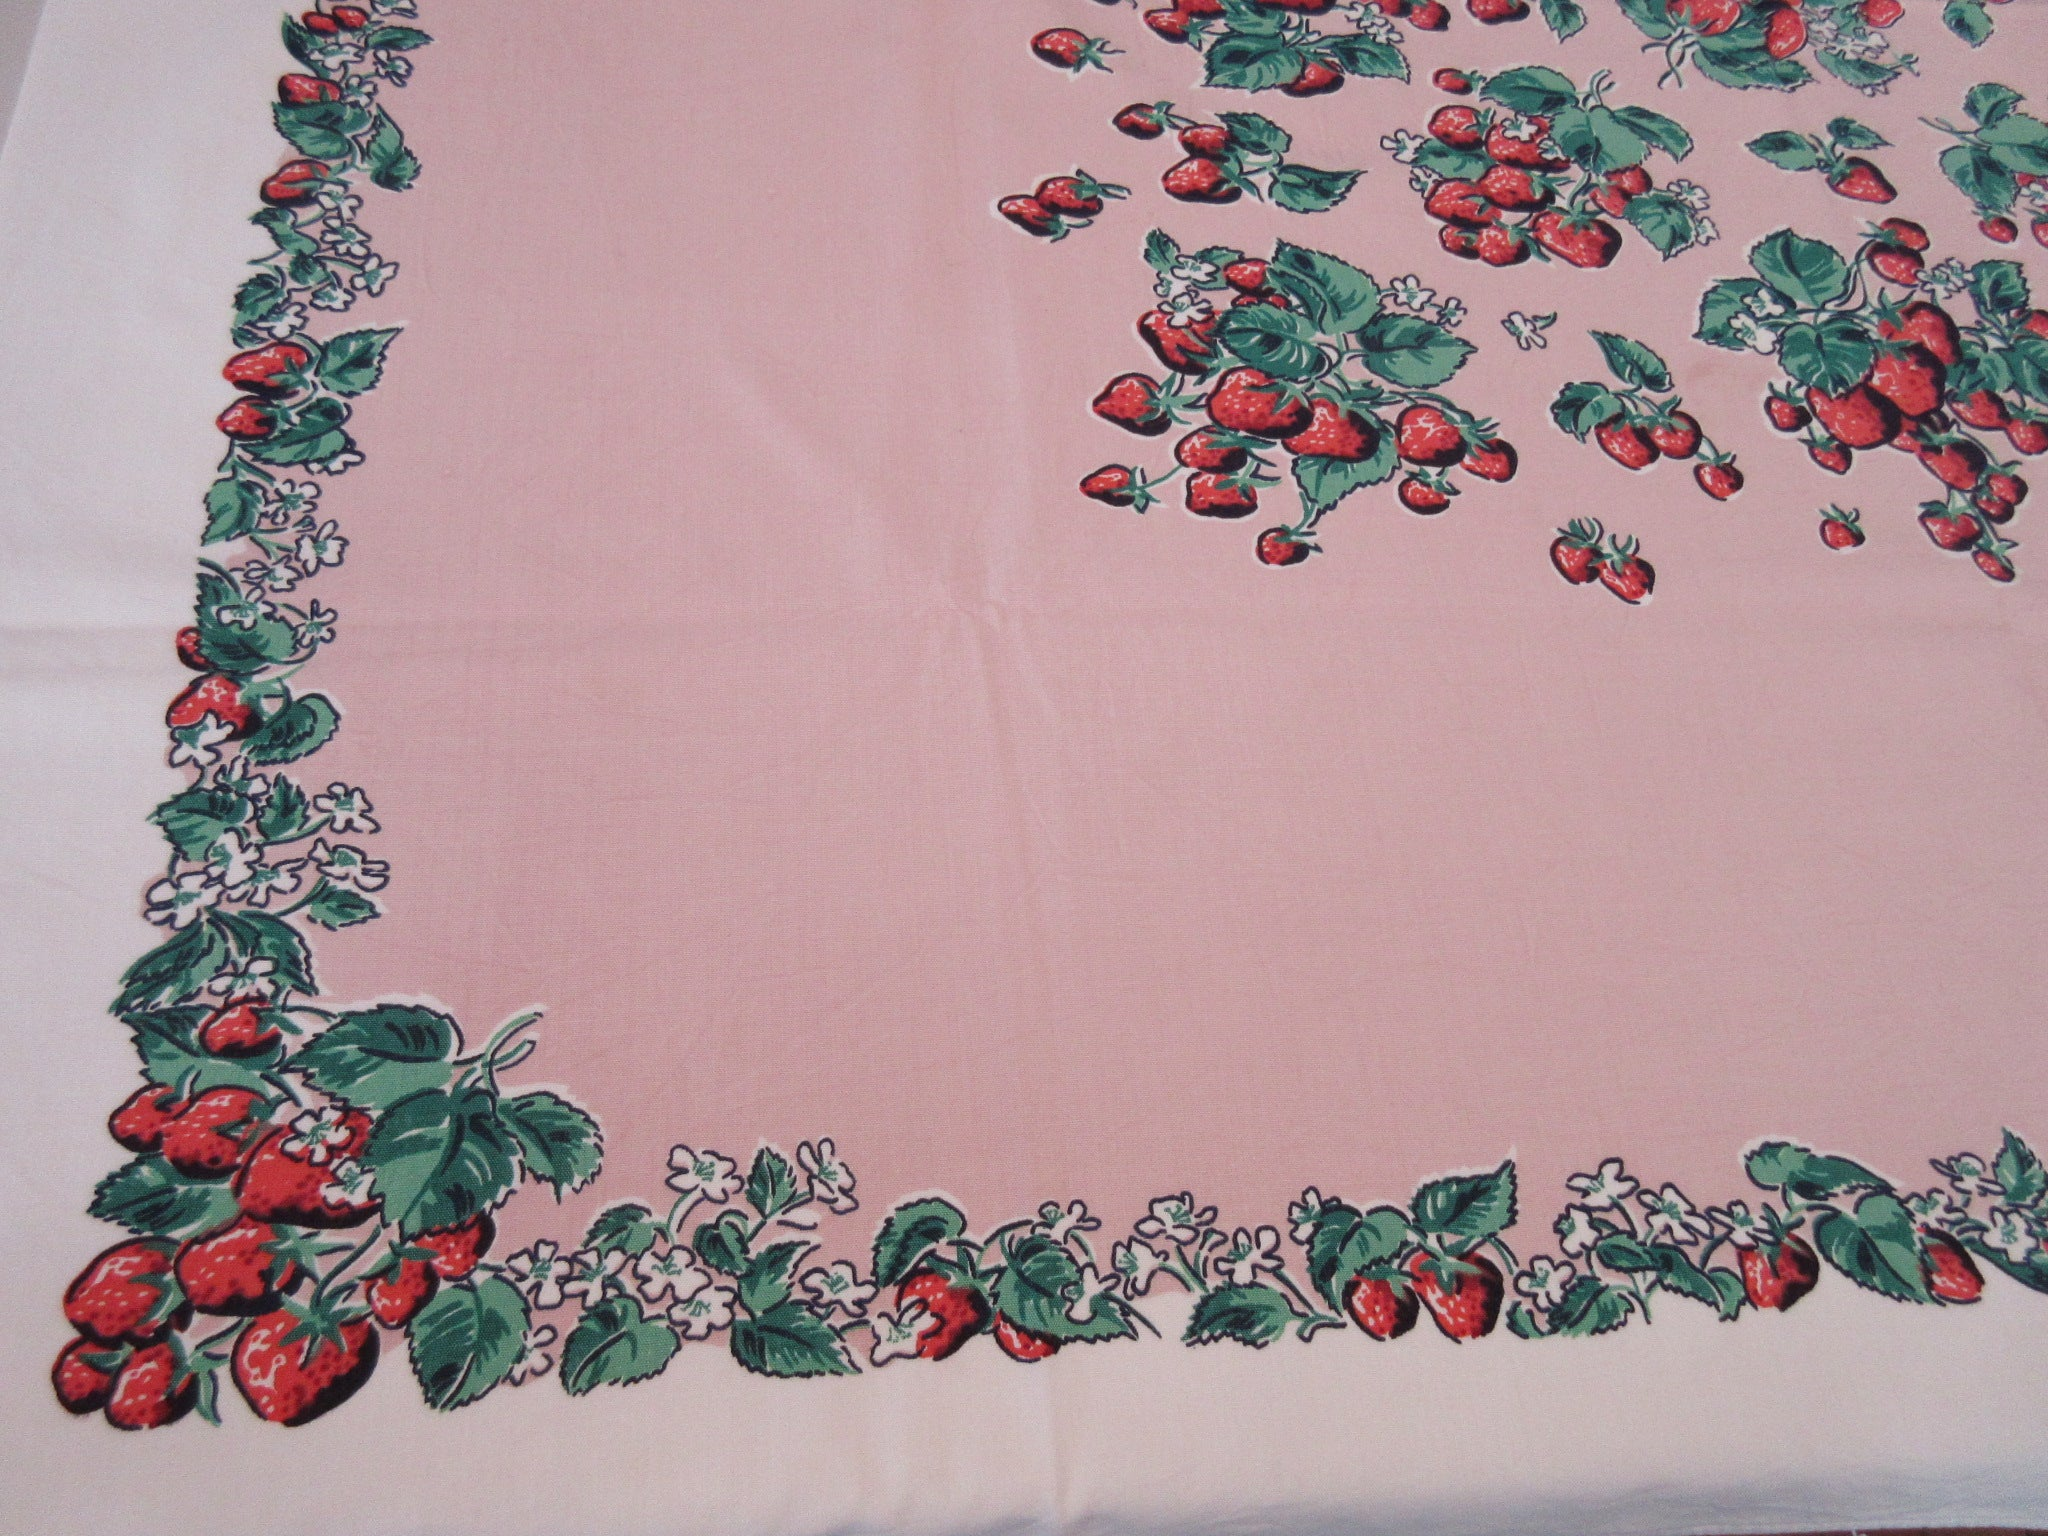 Sweet Strawberries on Pink Fruit Simtex Vintage Printed Tablecloth (51 X 46)